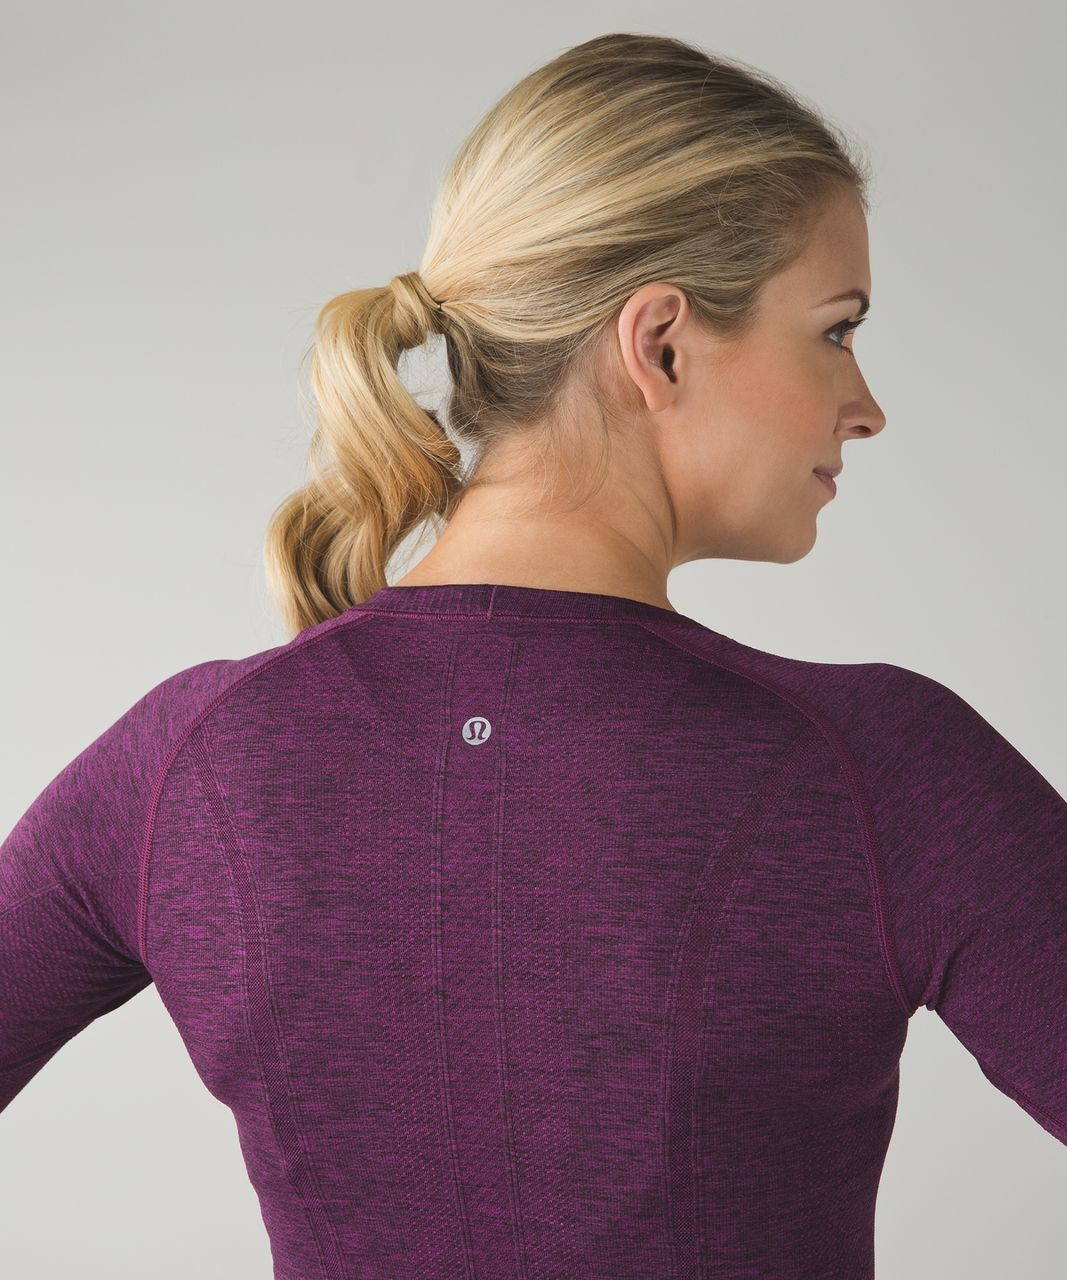 Lululemon Swiftly Tech Long Sleeve Crew - Heathered Regal Plum